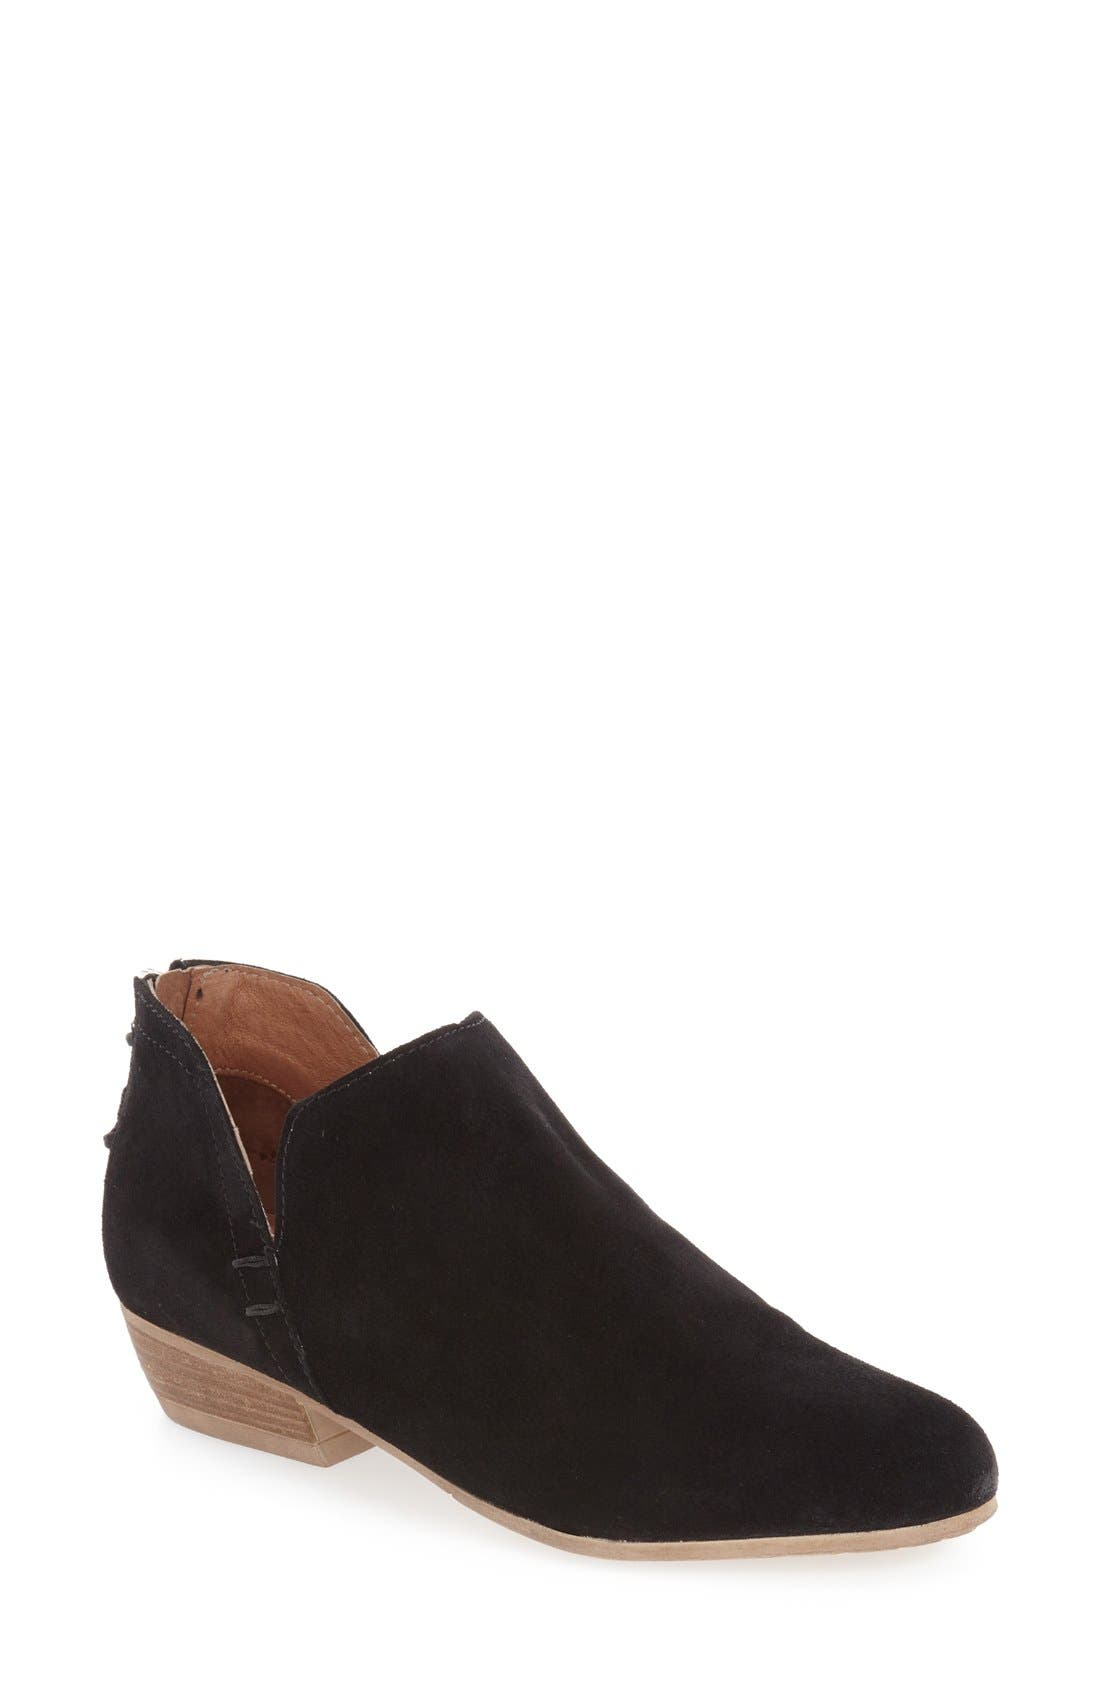 Alternate Image 1 Selected - Kenneth Cole New York 'Cooper' Suede Bootie (Women)